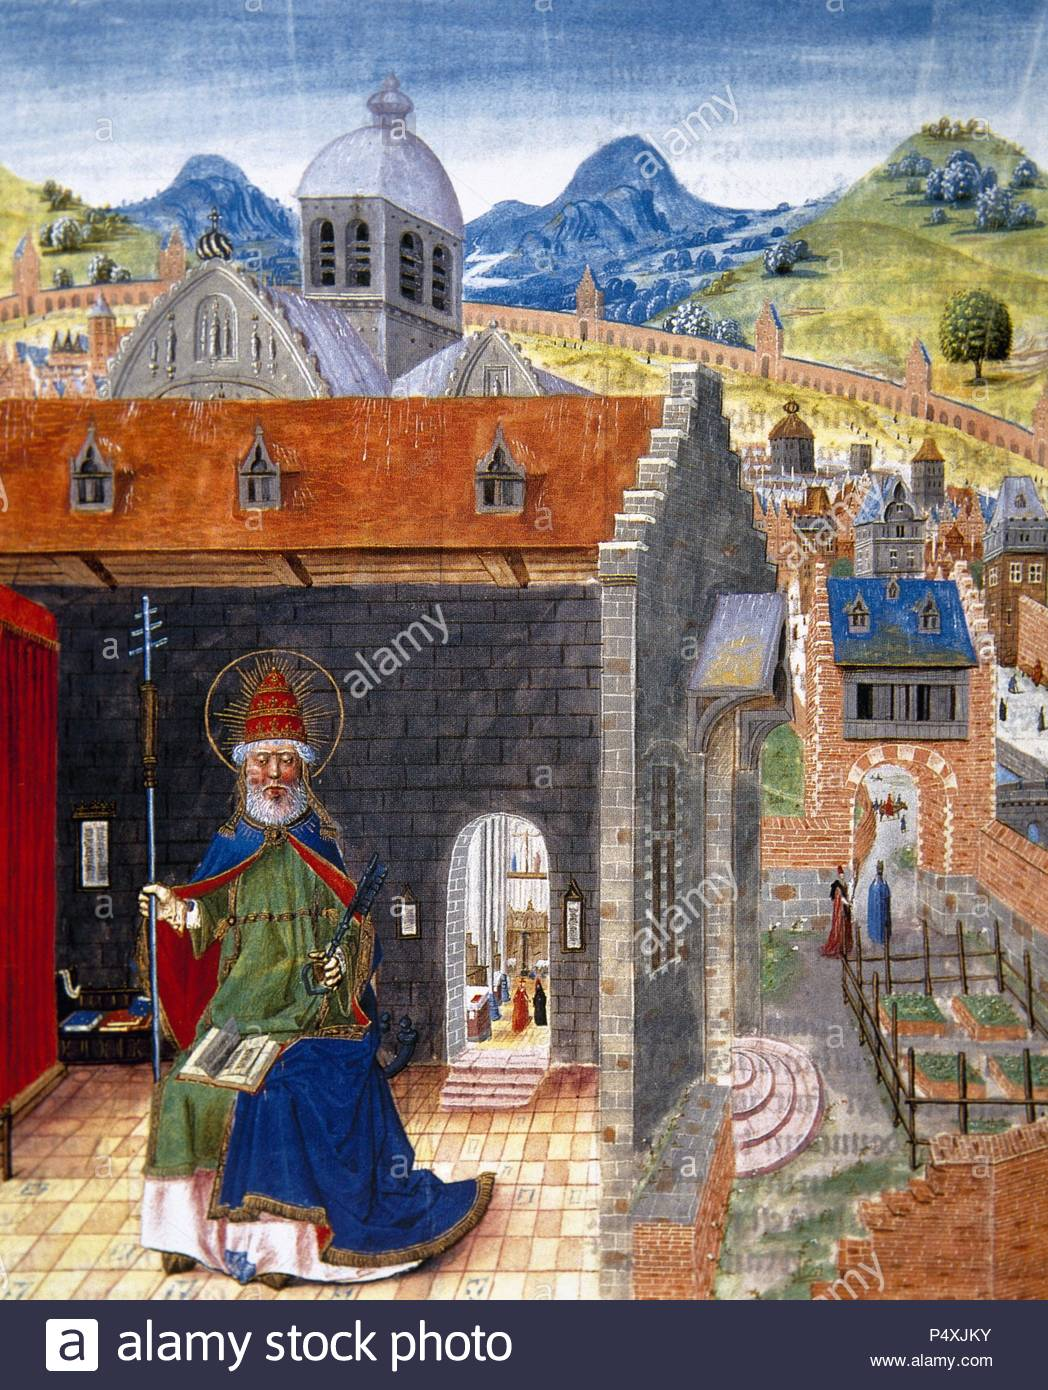 Liber Floridus (Book of Flowers). Medieval encyclopedia, 1090-1120 by Lambert, Canon of Saint-Omer. Miniature depicting Saint Peter and the city of Rome. Manuscript of the15th century. Conde Museum. Chateau of Chantilly. France. - Stock Image